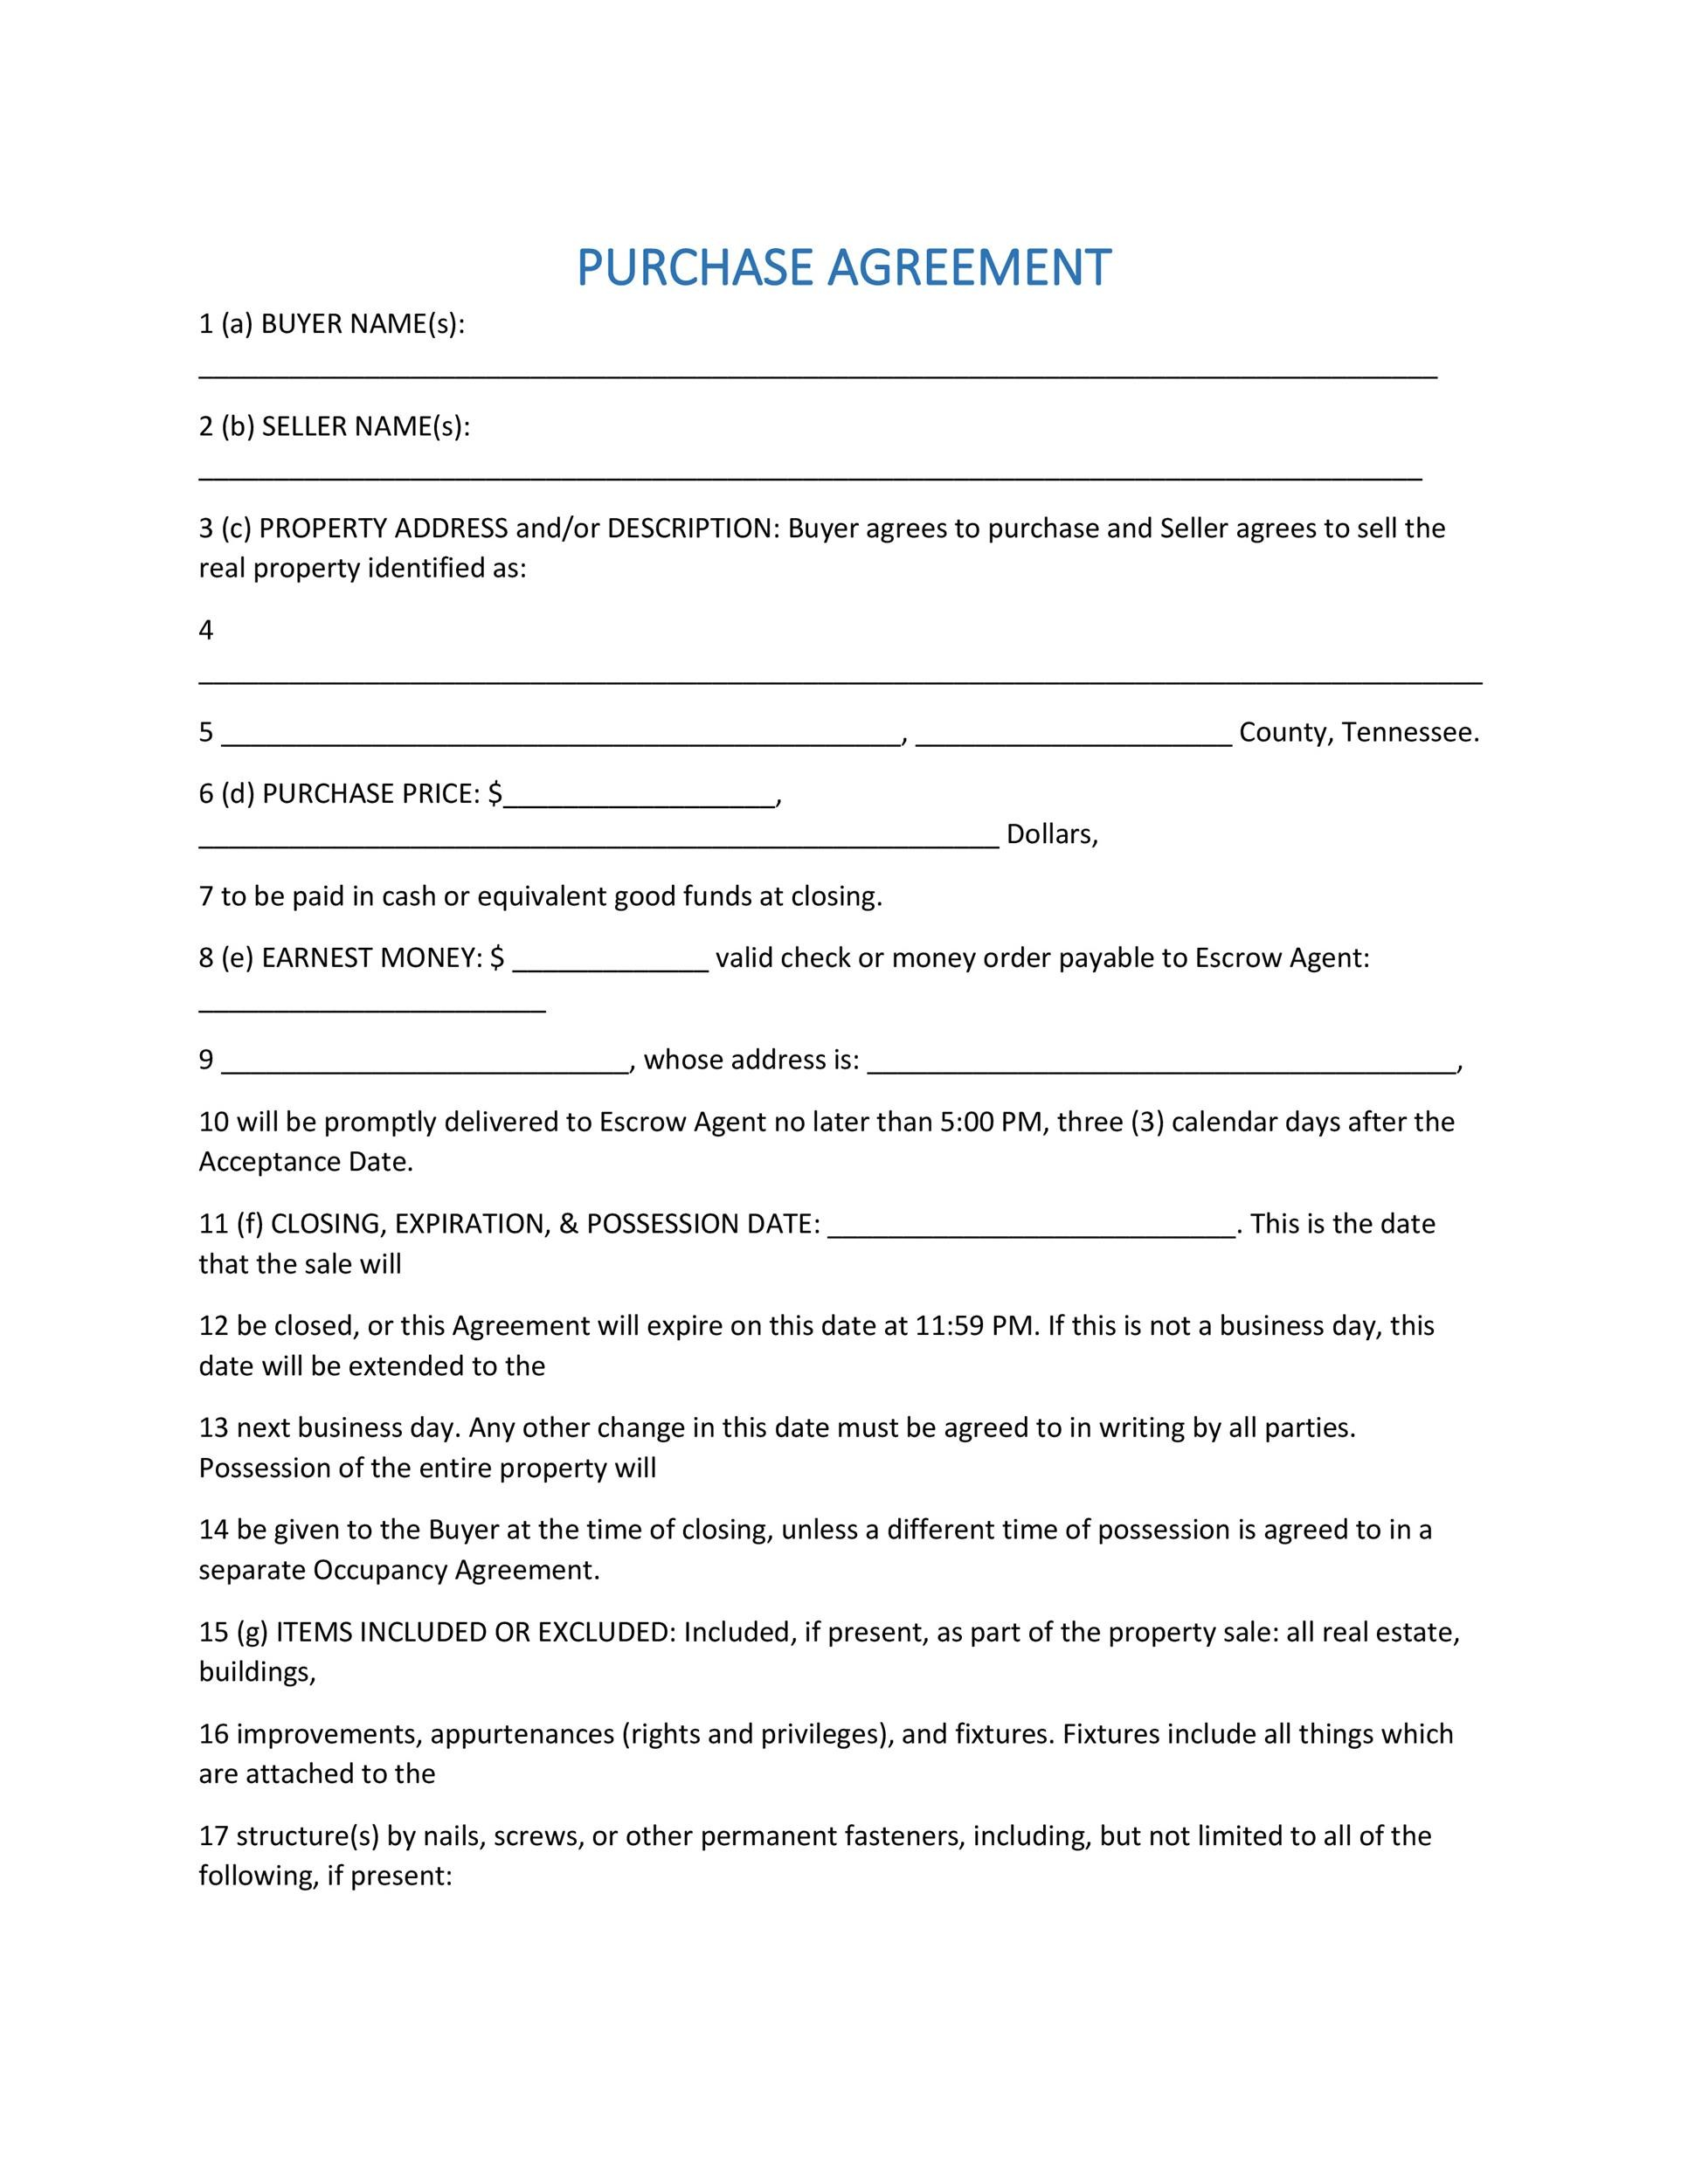 10/01/2018· acquisition agreement template best sample acquisition agreement template excel word pdf doc xls blank tips: 37 Simple Purchase Agreement Templates Real Estate Business